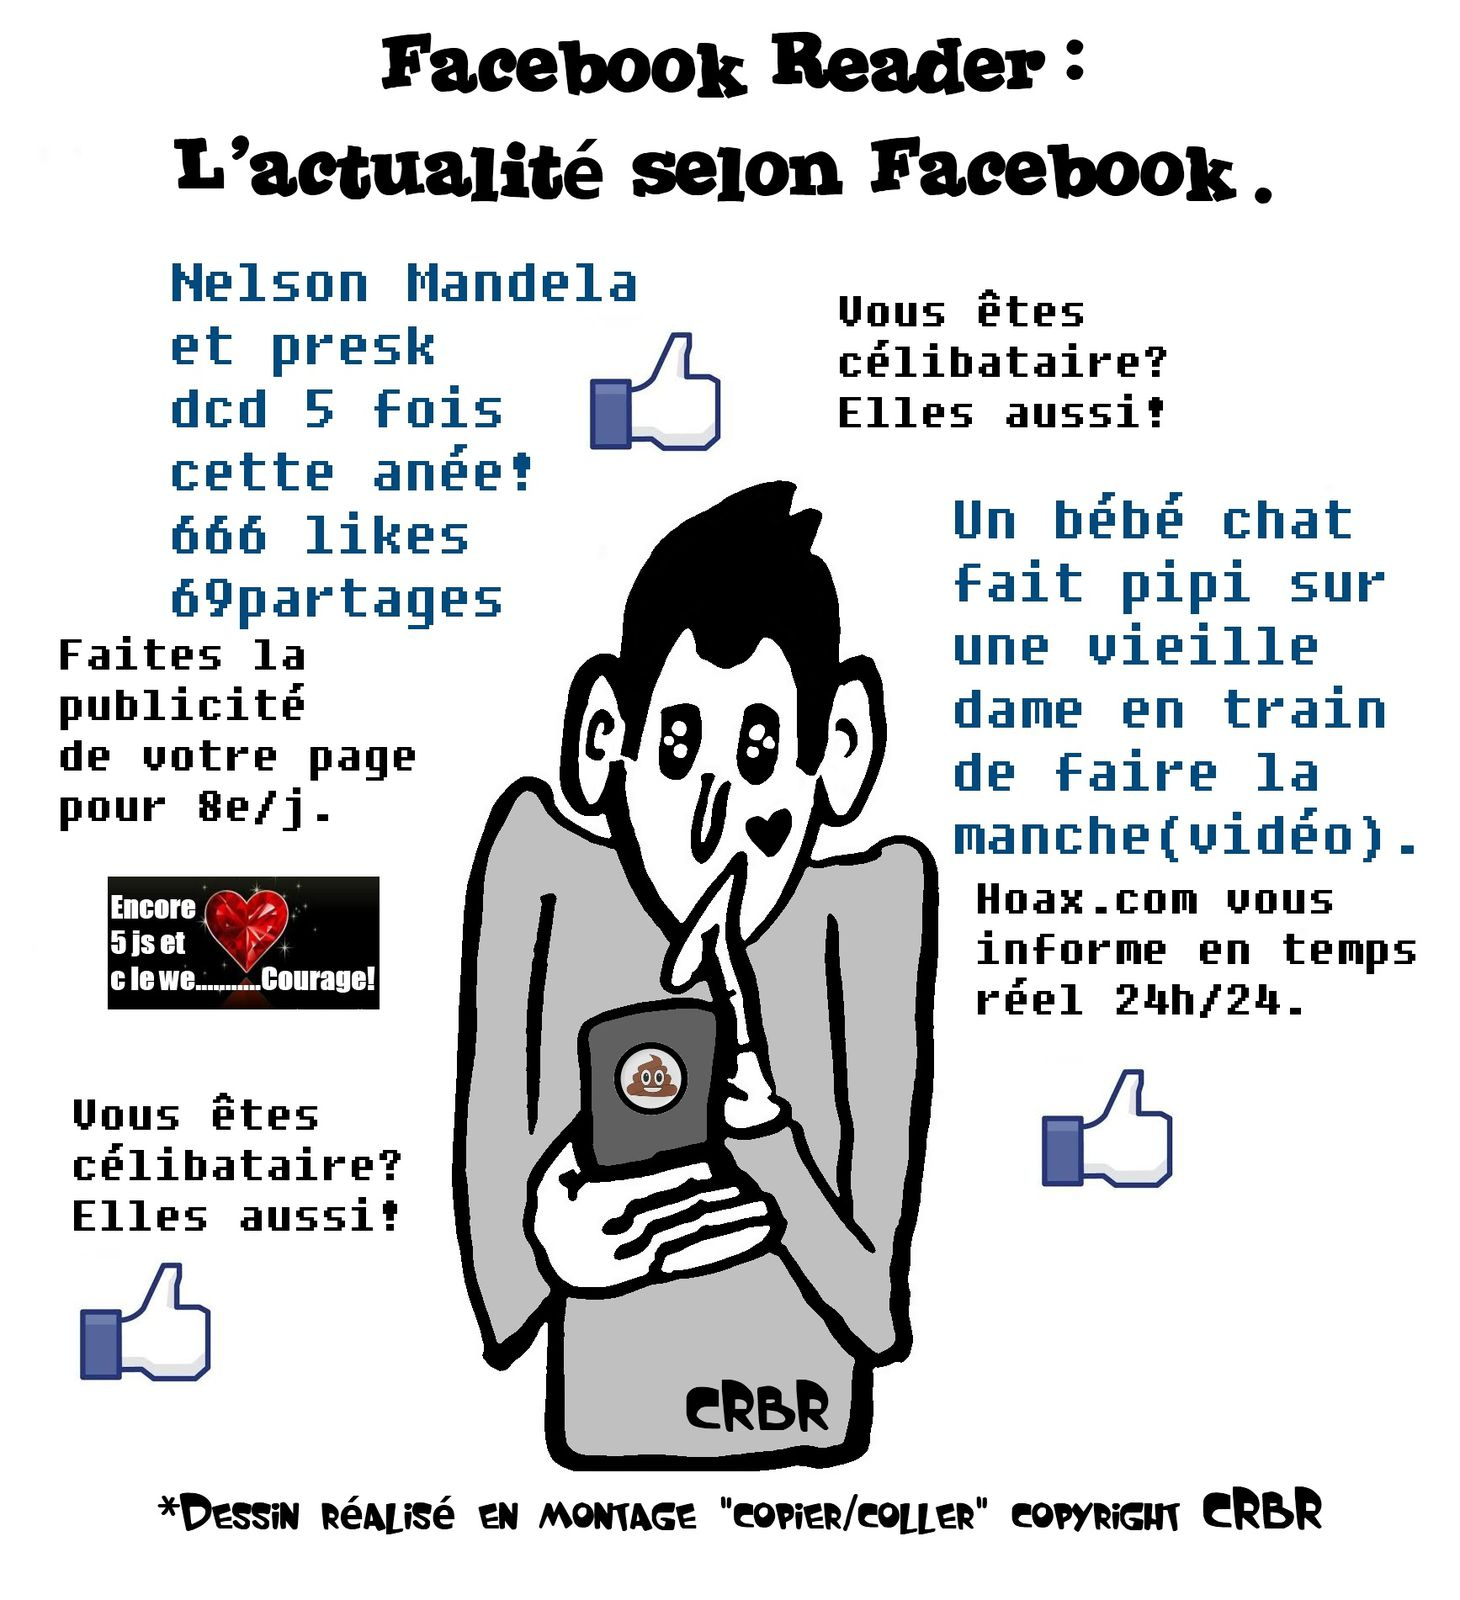 Facebook reader: L'actualité selon Facebook.